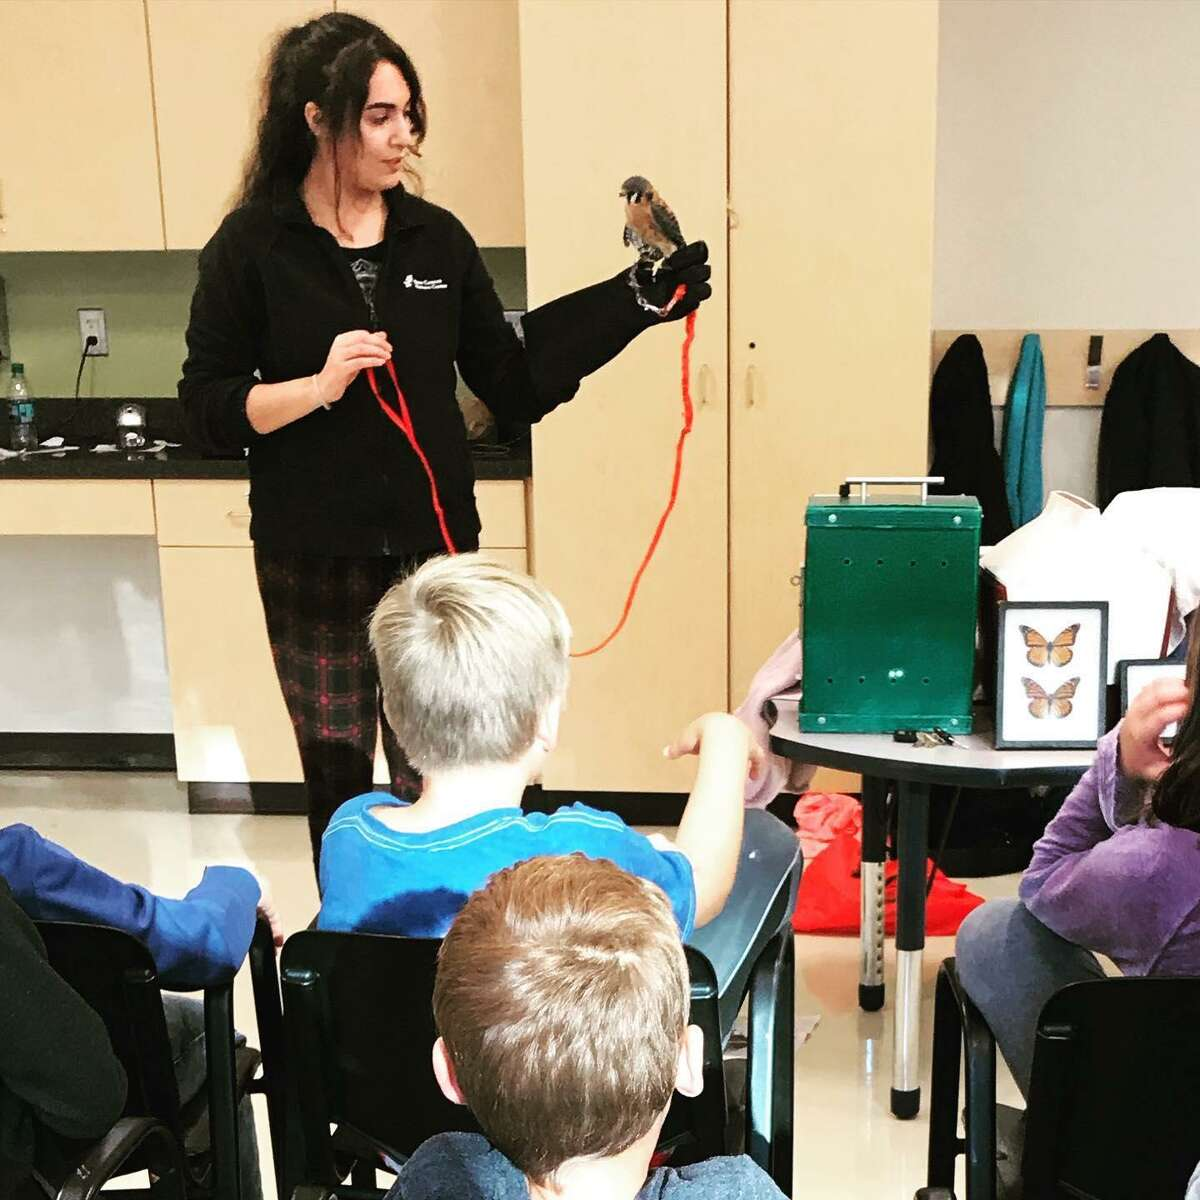 Christiana Ricchezza of the New Canaan Nature Center shows off a falcon to students in the Wilton Weekday Warriors program sponsored by Parks and Recreation.